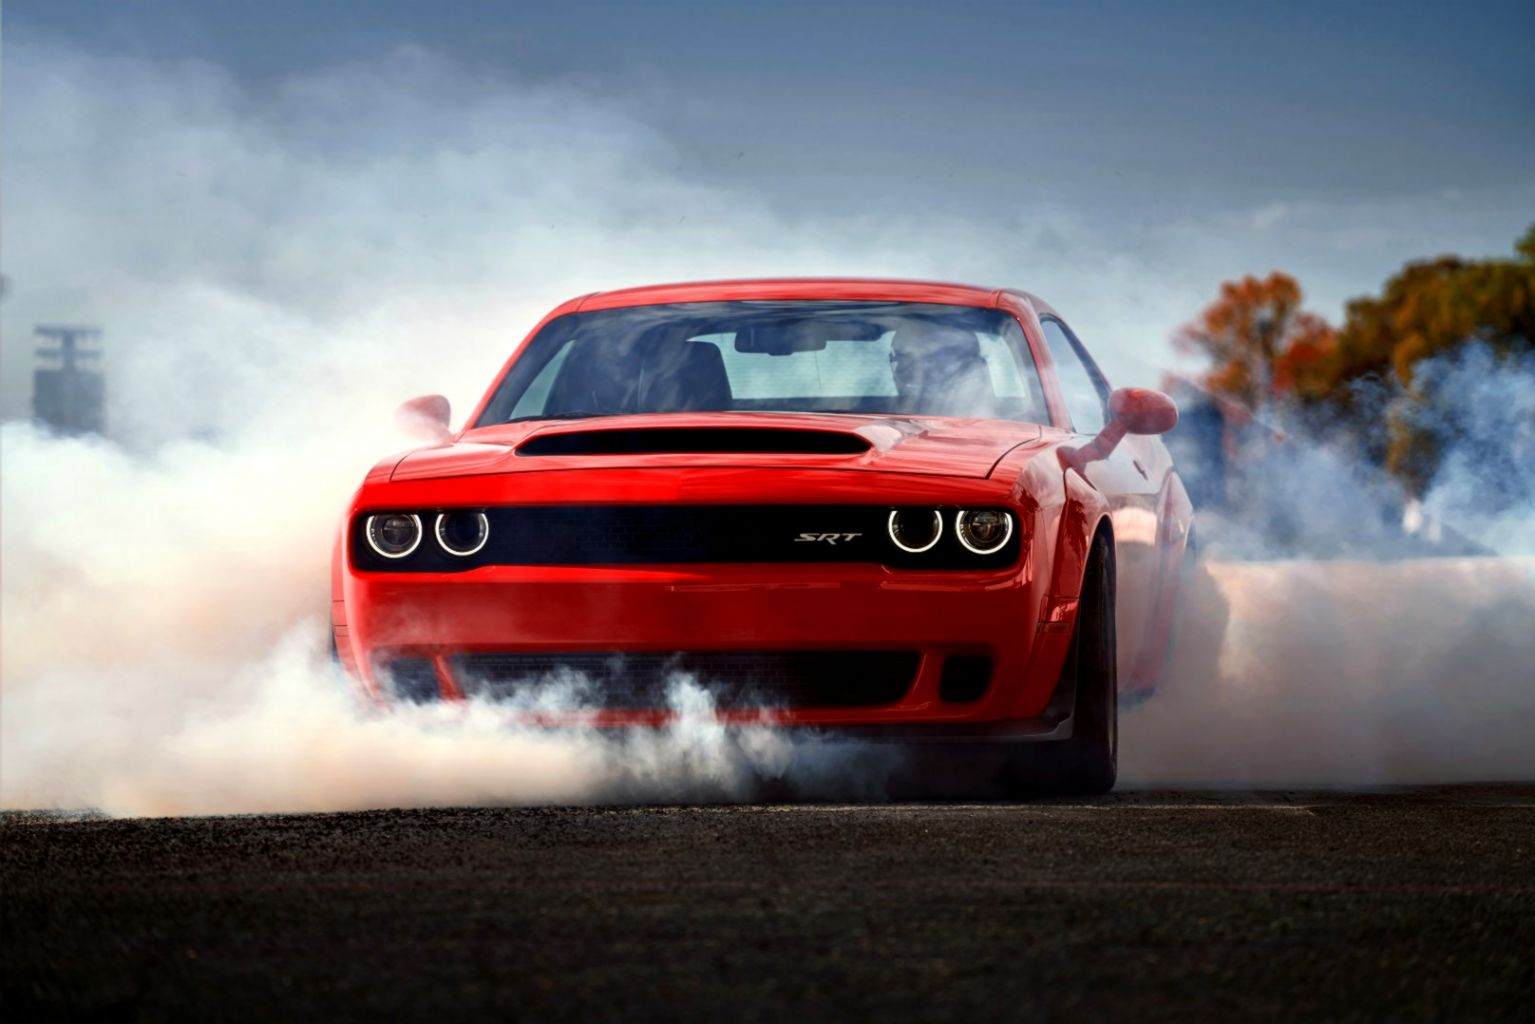 Dodge Challenger Background Wallpapers Photos 1535x1024